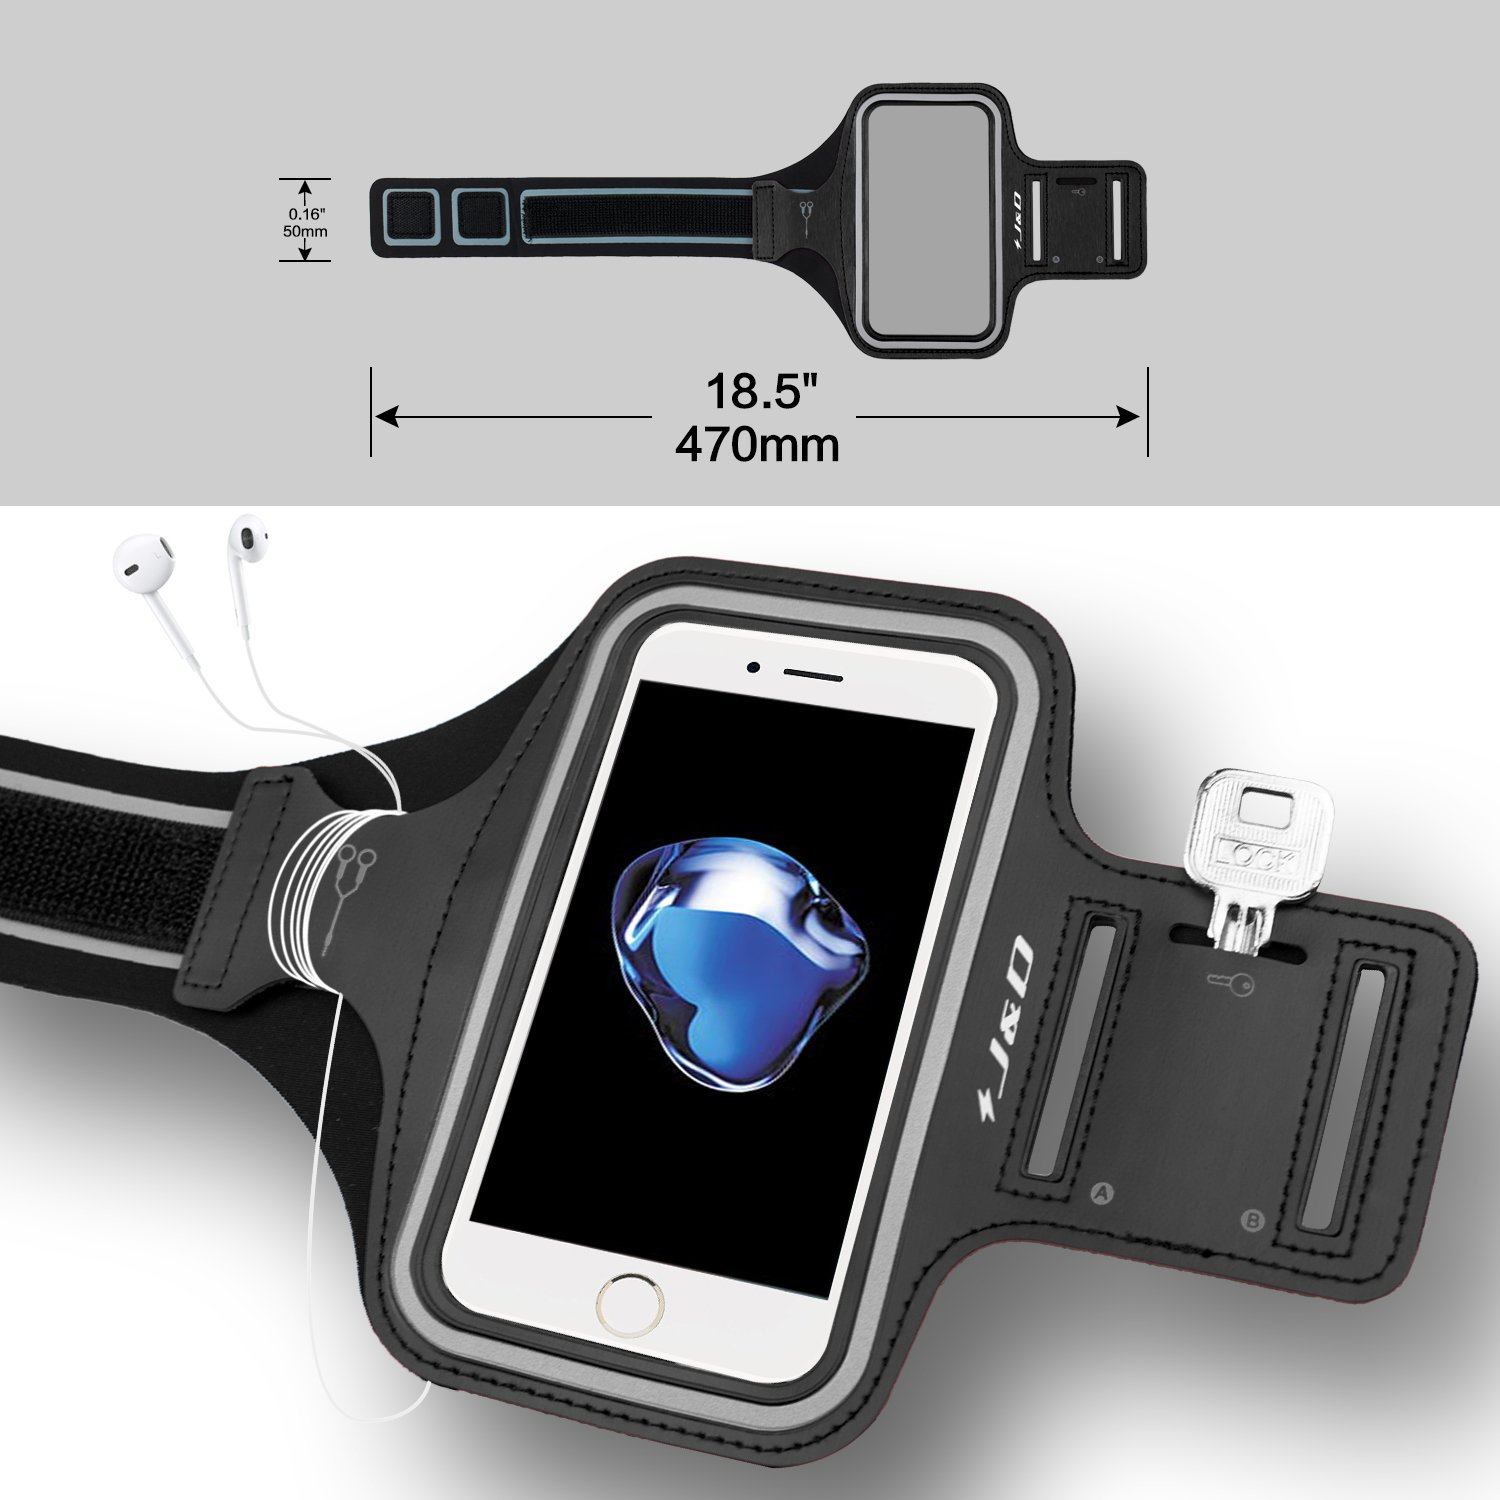 J/&D Armband Compatible for iPhone 7 Plus Armband Black Perfect Earphone Connection while Workout Running Sports Armband with Key holder Slot for Apple iPhone 7 Plus Running Armband